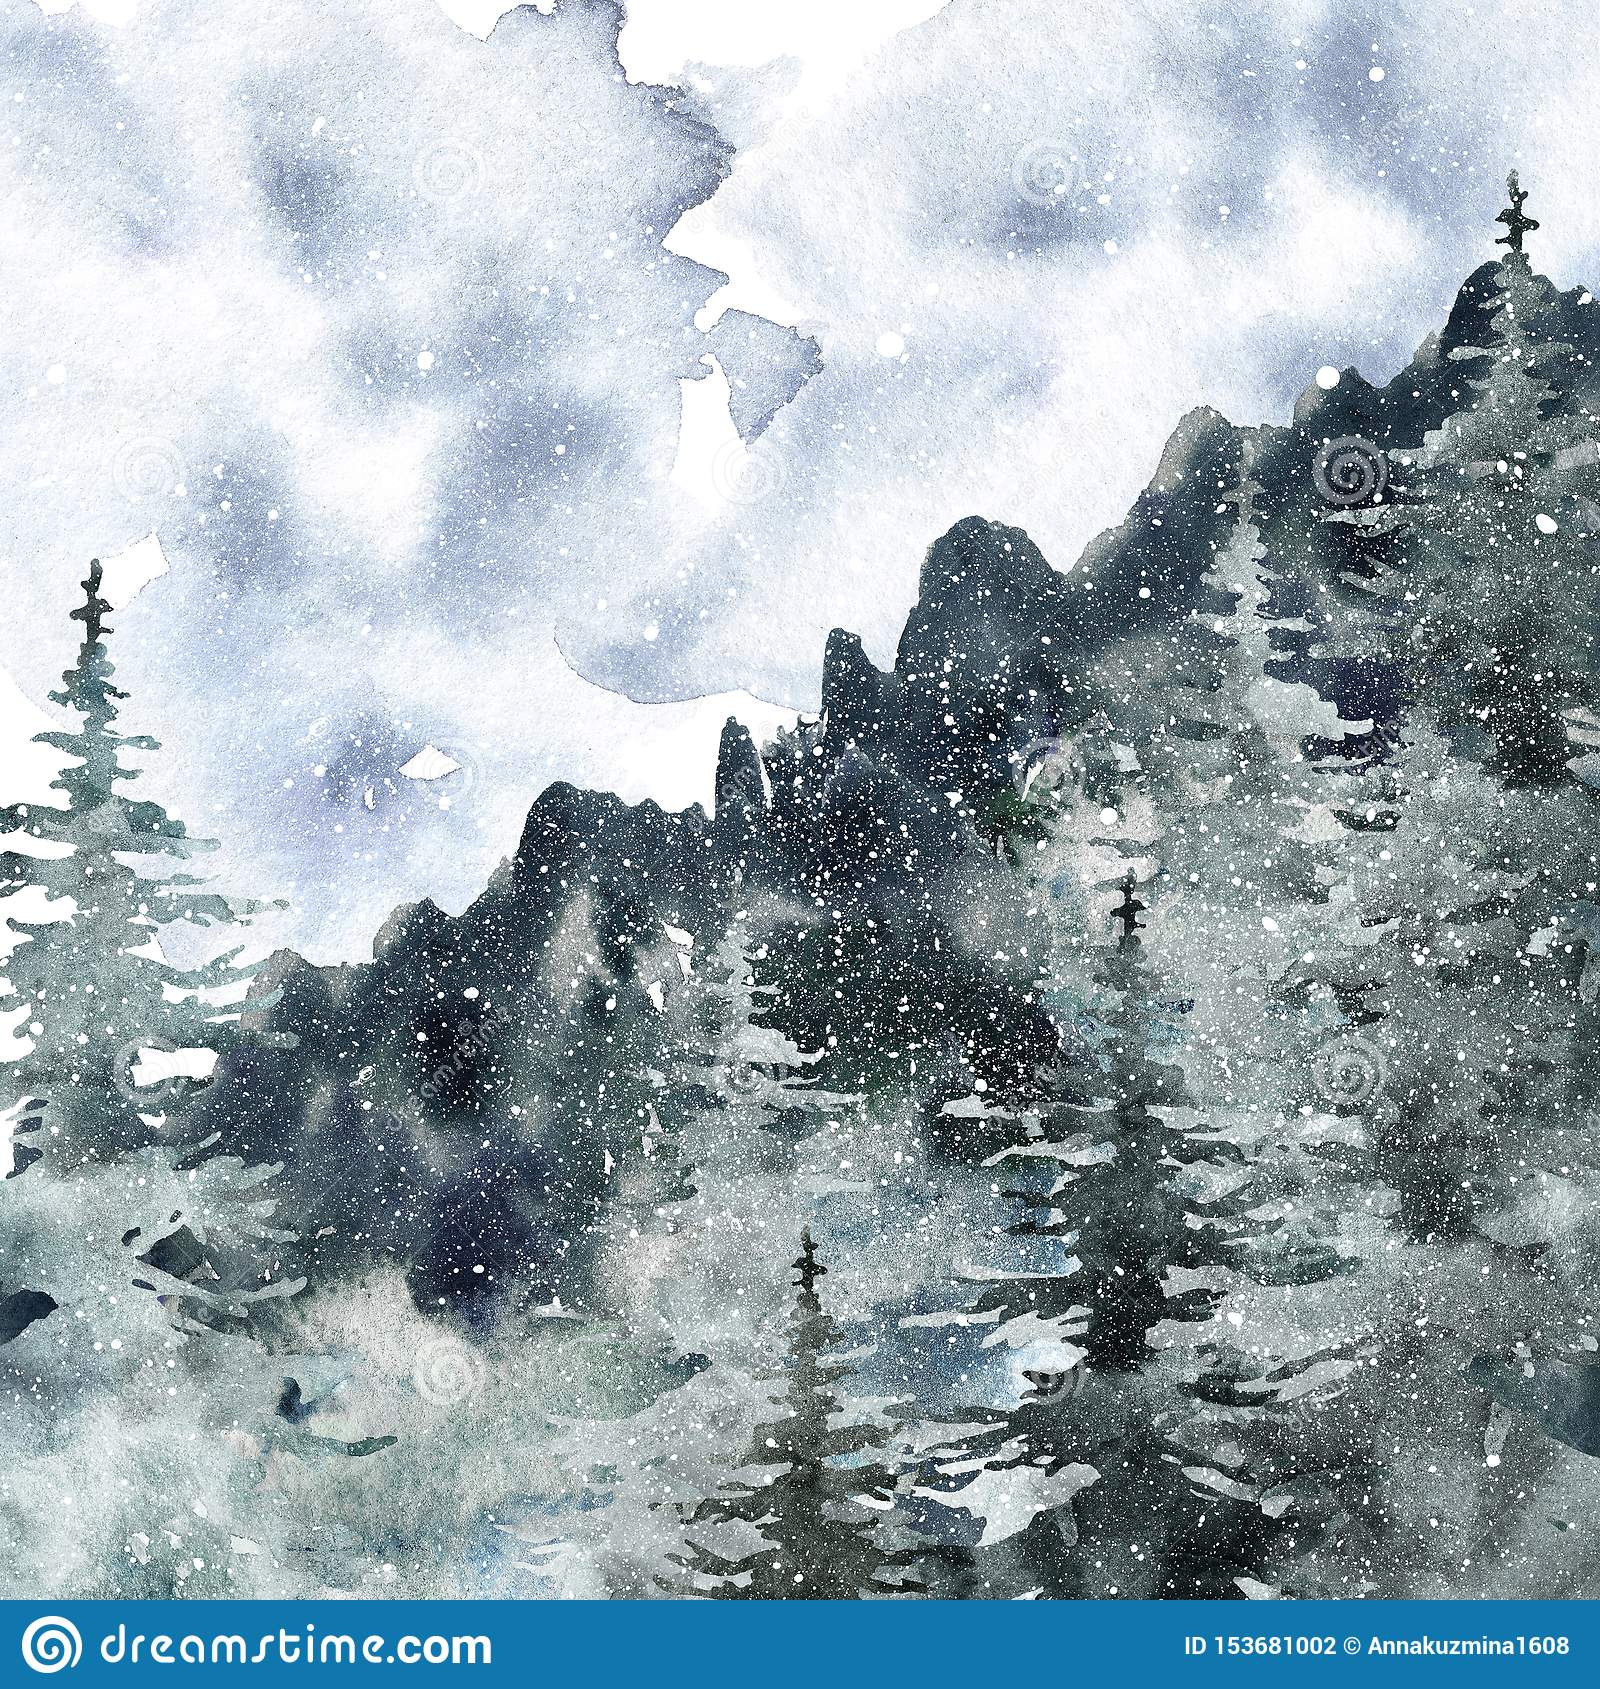 Dark Mountain and Pine Tree Landscape Painting Watercolor Painting